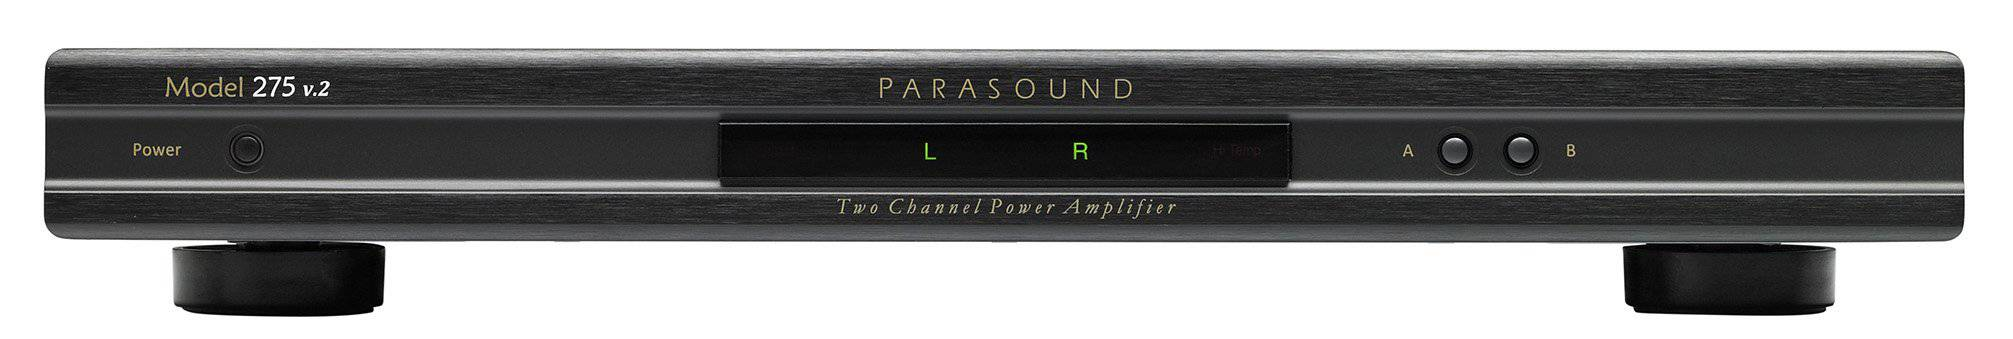 Parasound NewClassic 275 v.2 - 2 Channel Power Amplifier - The Audio Company